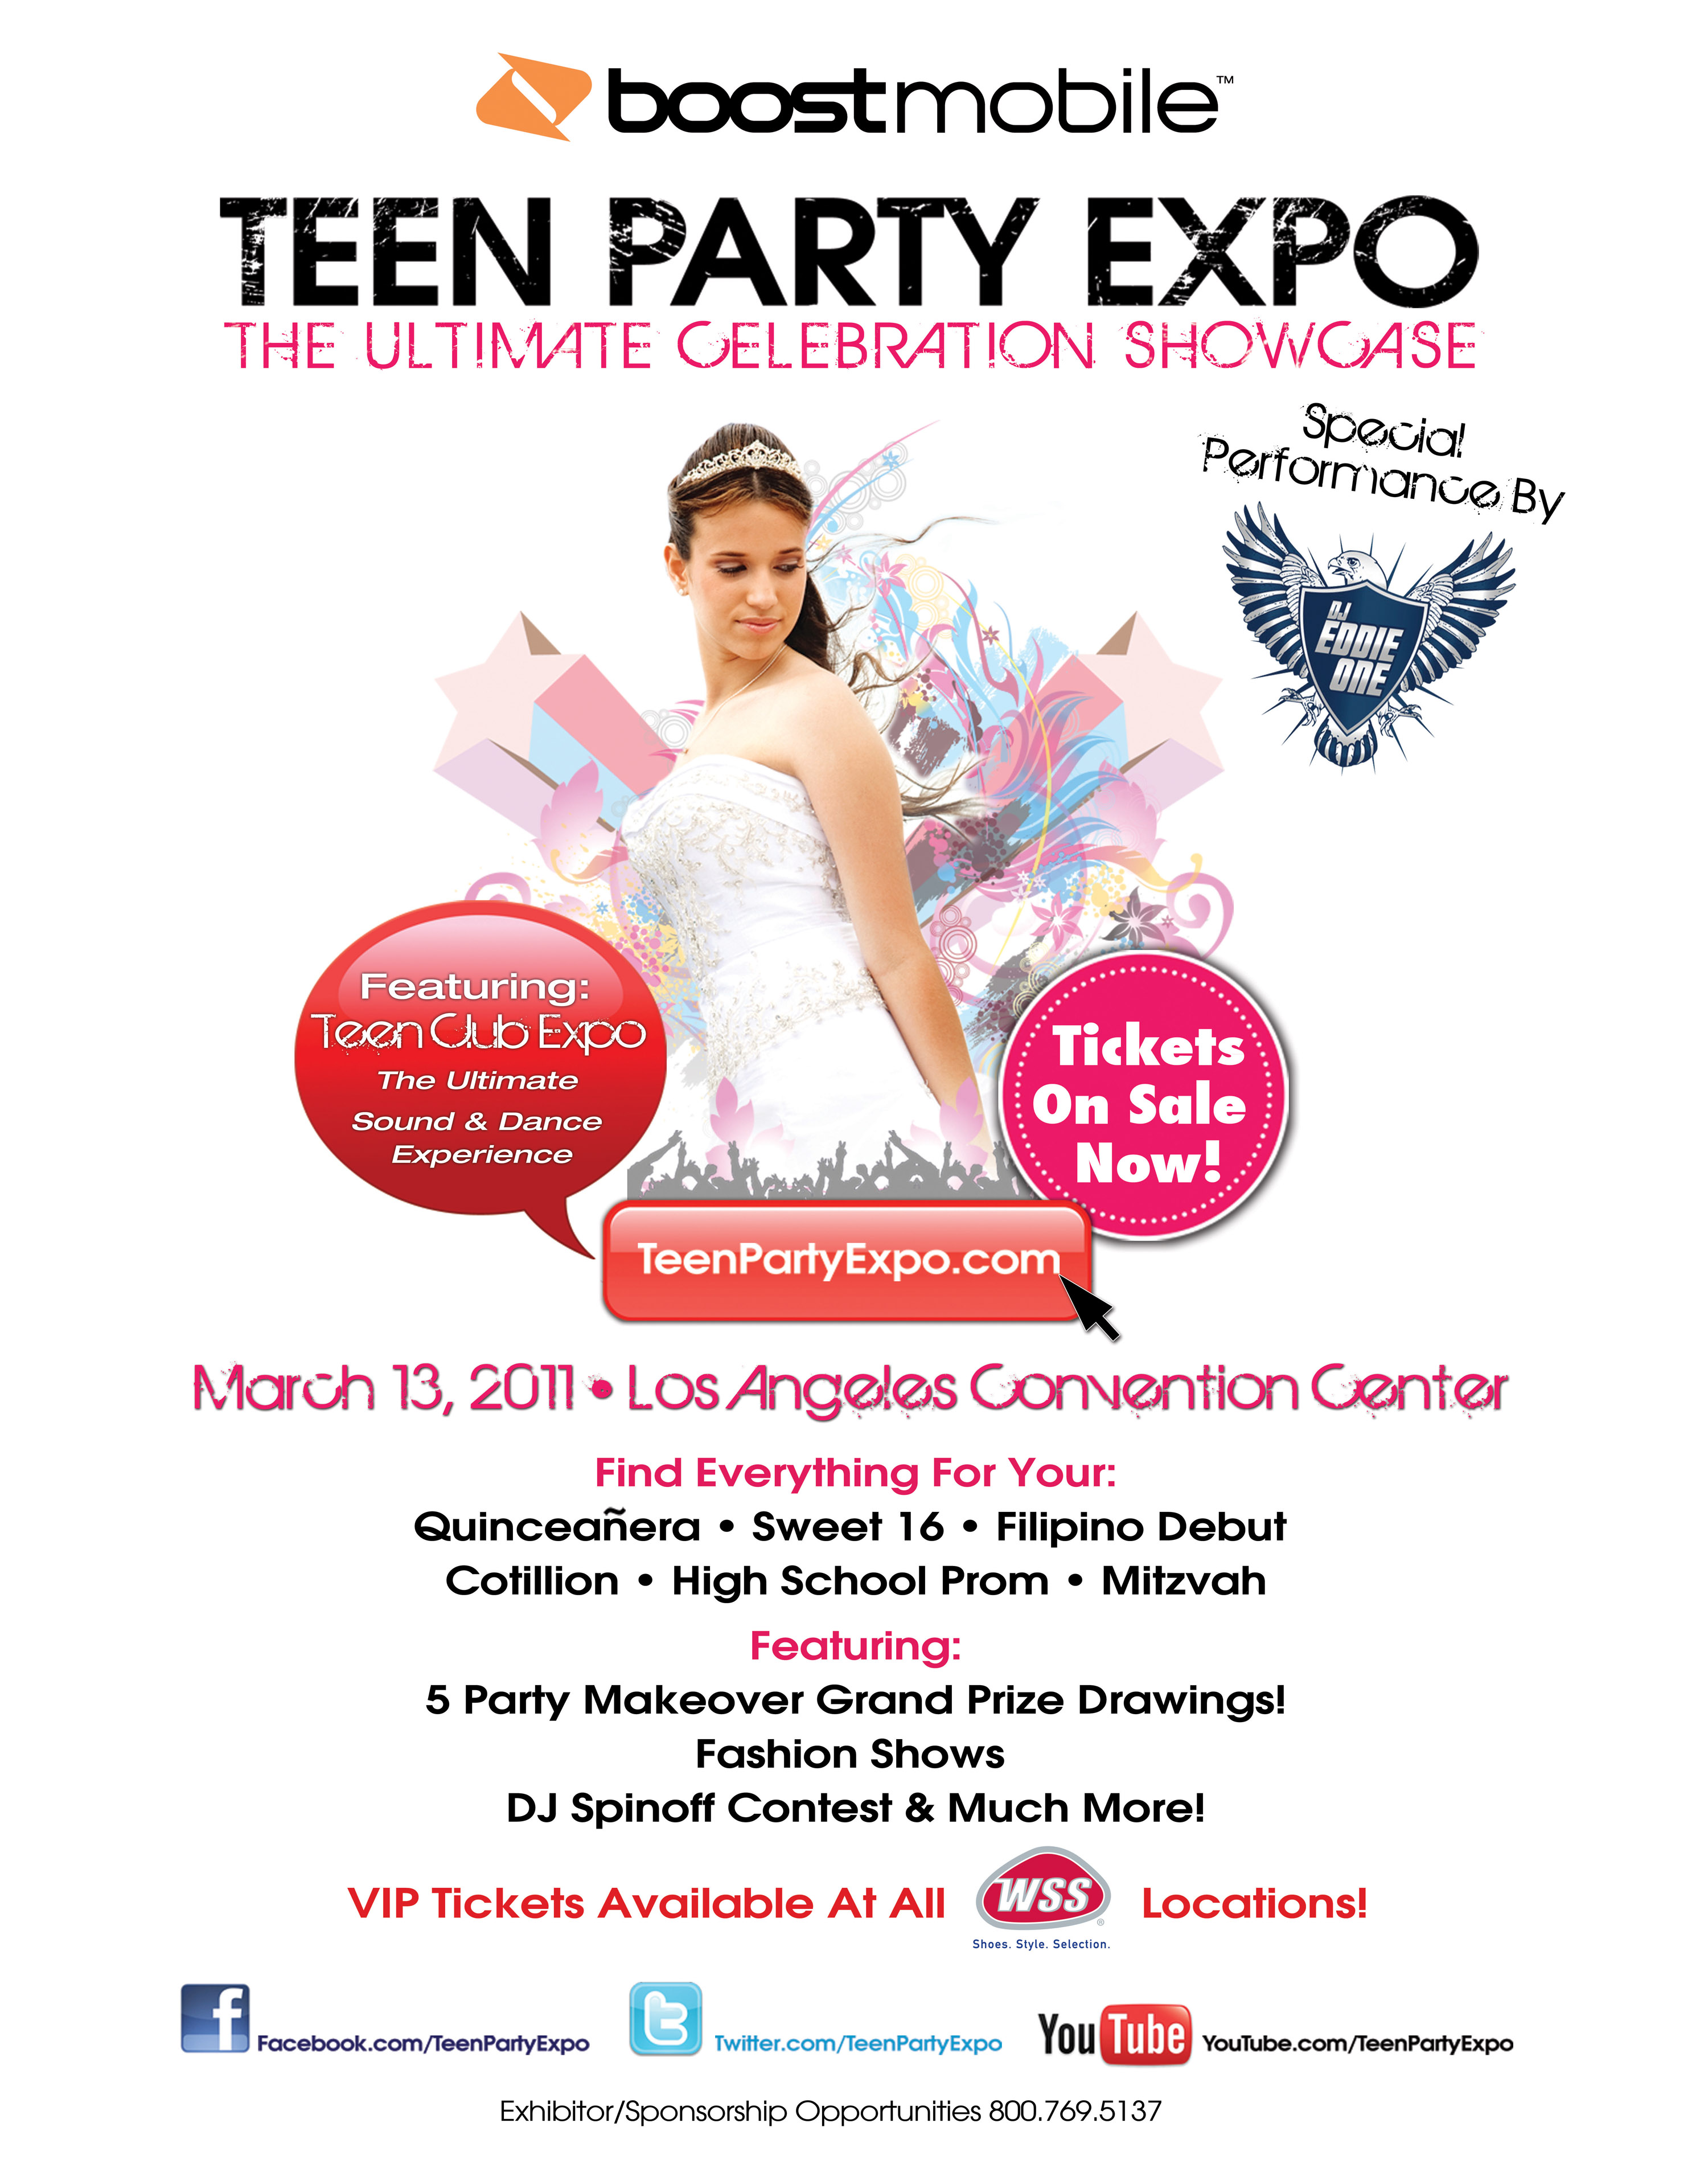 TeenPartyExpo22x28 With 32000 students in the Fremont Unified School District, ...